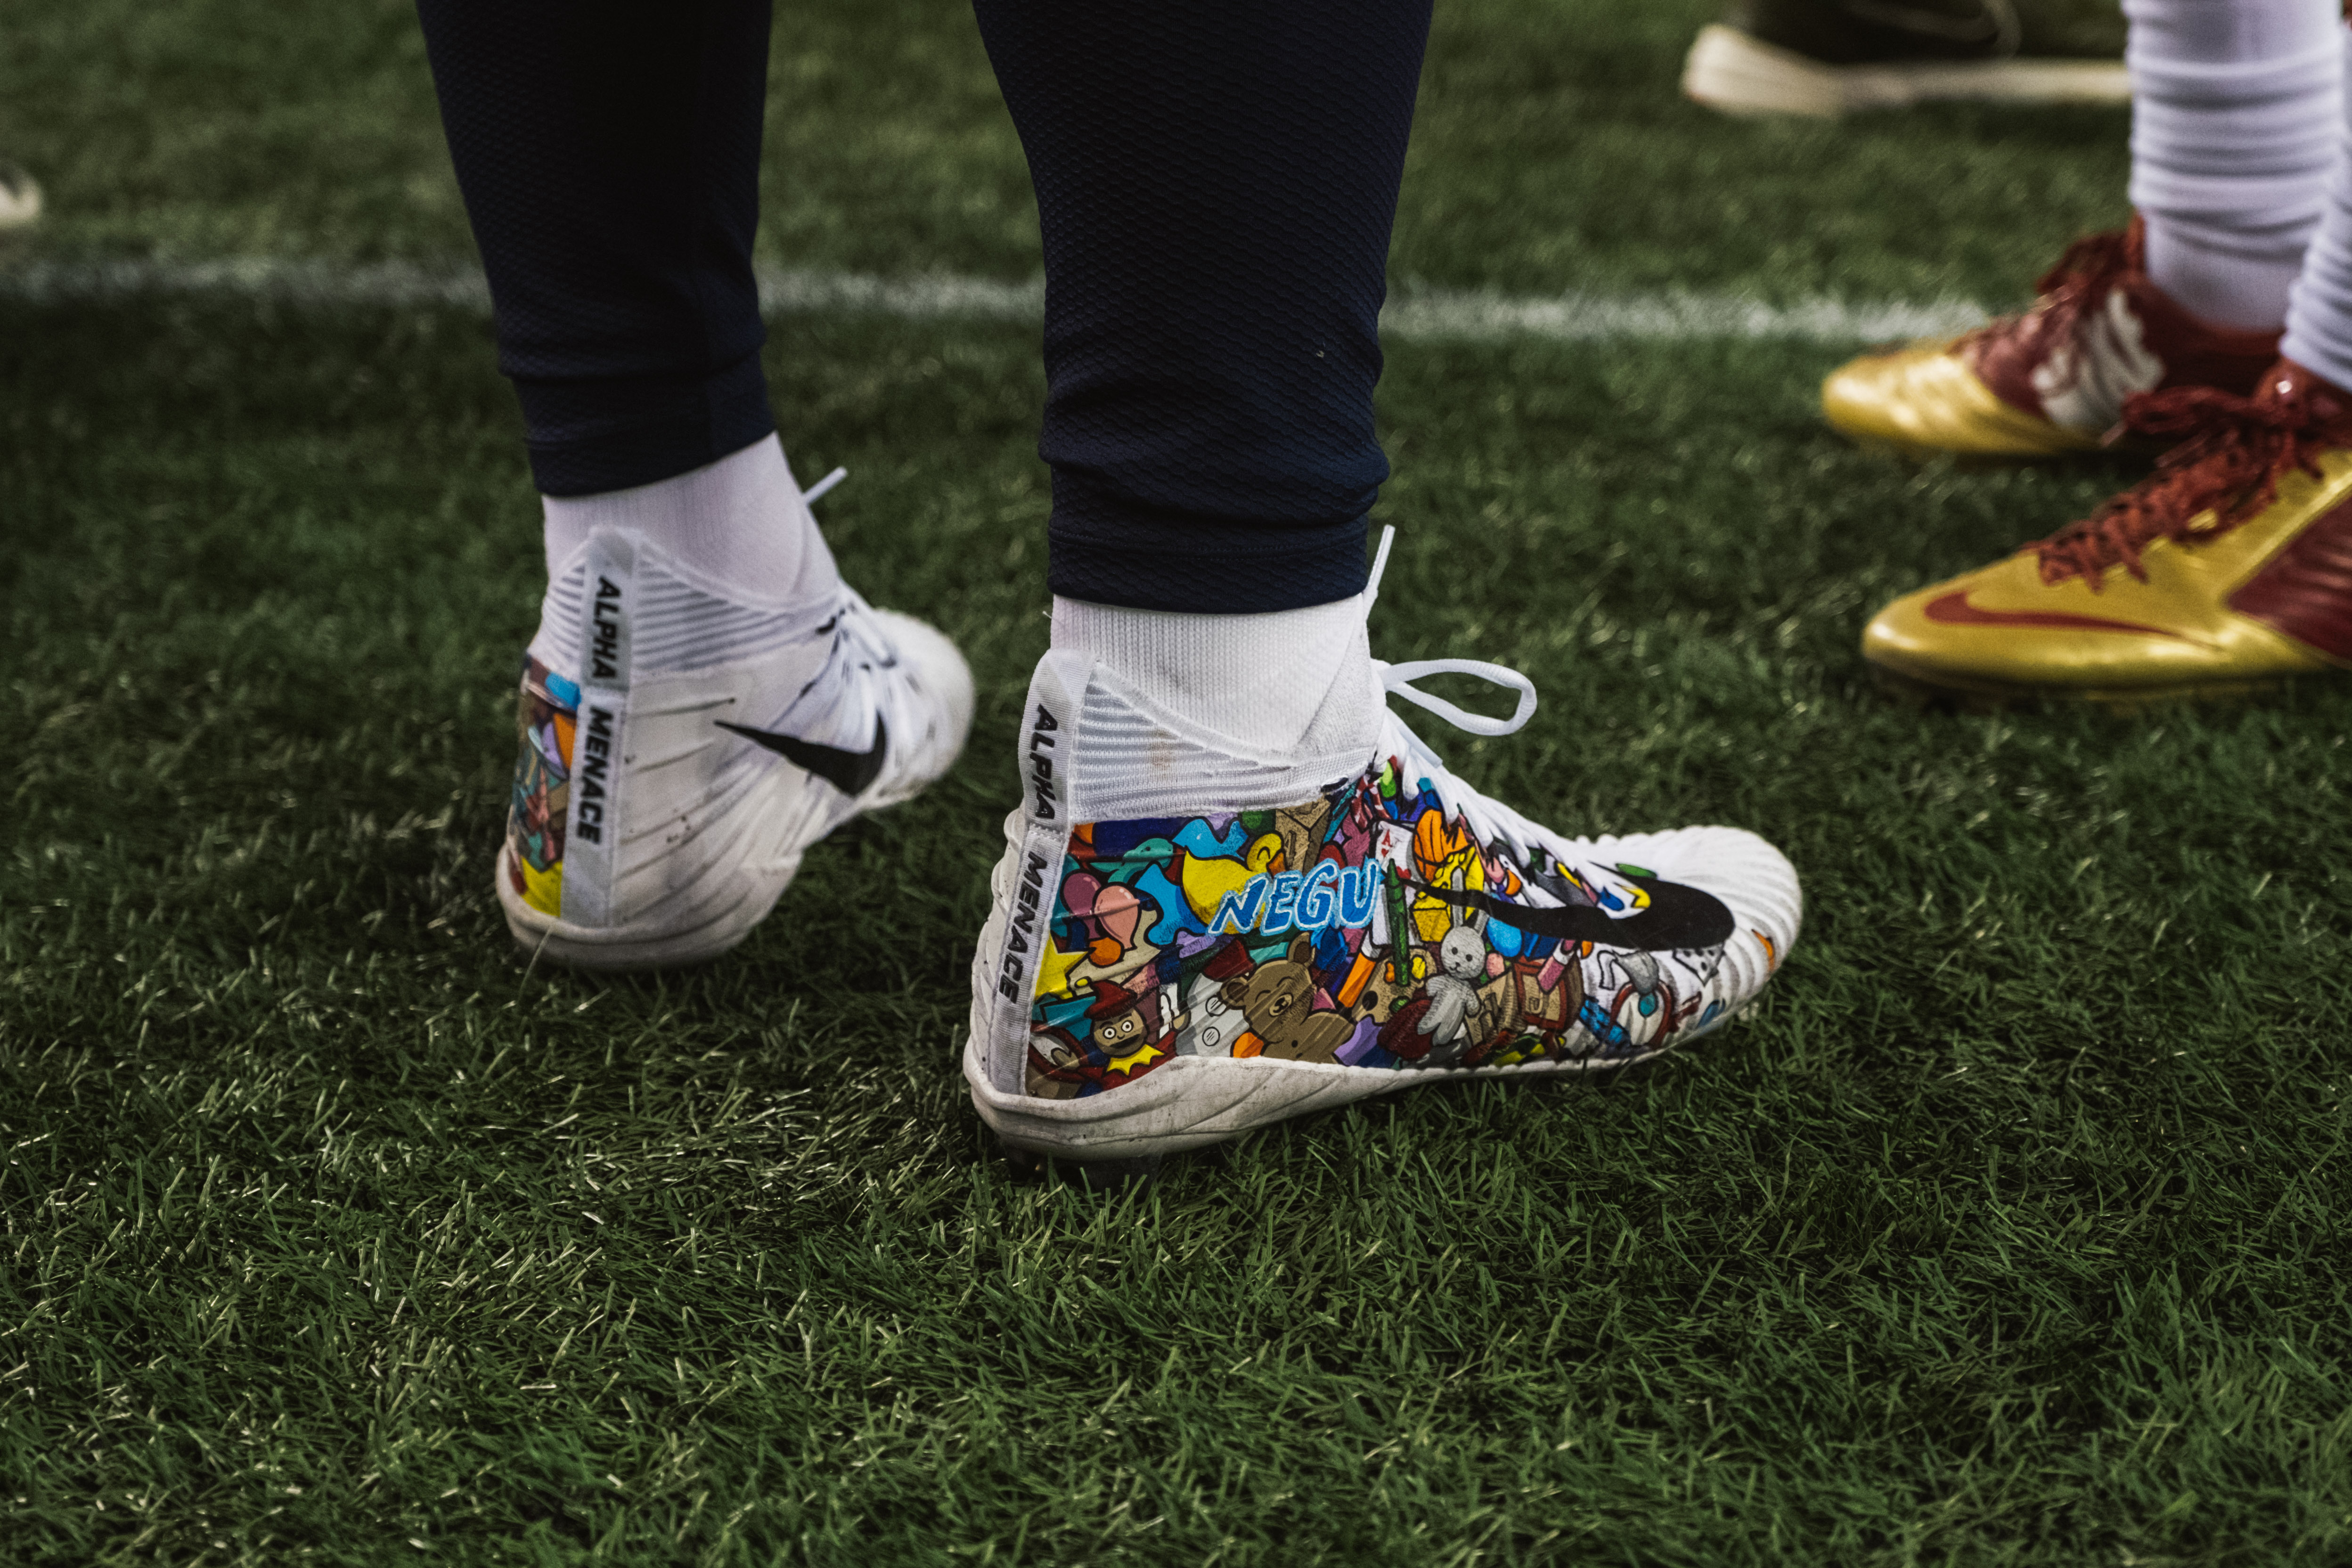 Every year the NFL gives players a chance to showcase a charity of their choice on their shoes with the My Cause, My Cleats game. For tight end Nick Vannett the choice was an easy one. Never Ever Give Up: The Jessie Rees Foundation for Childhood Cancer (NEGU). (Image: Ryan McBoyle / Seattle Refined)